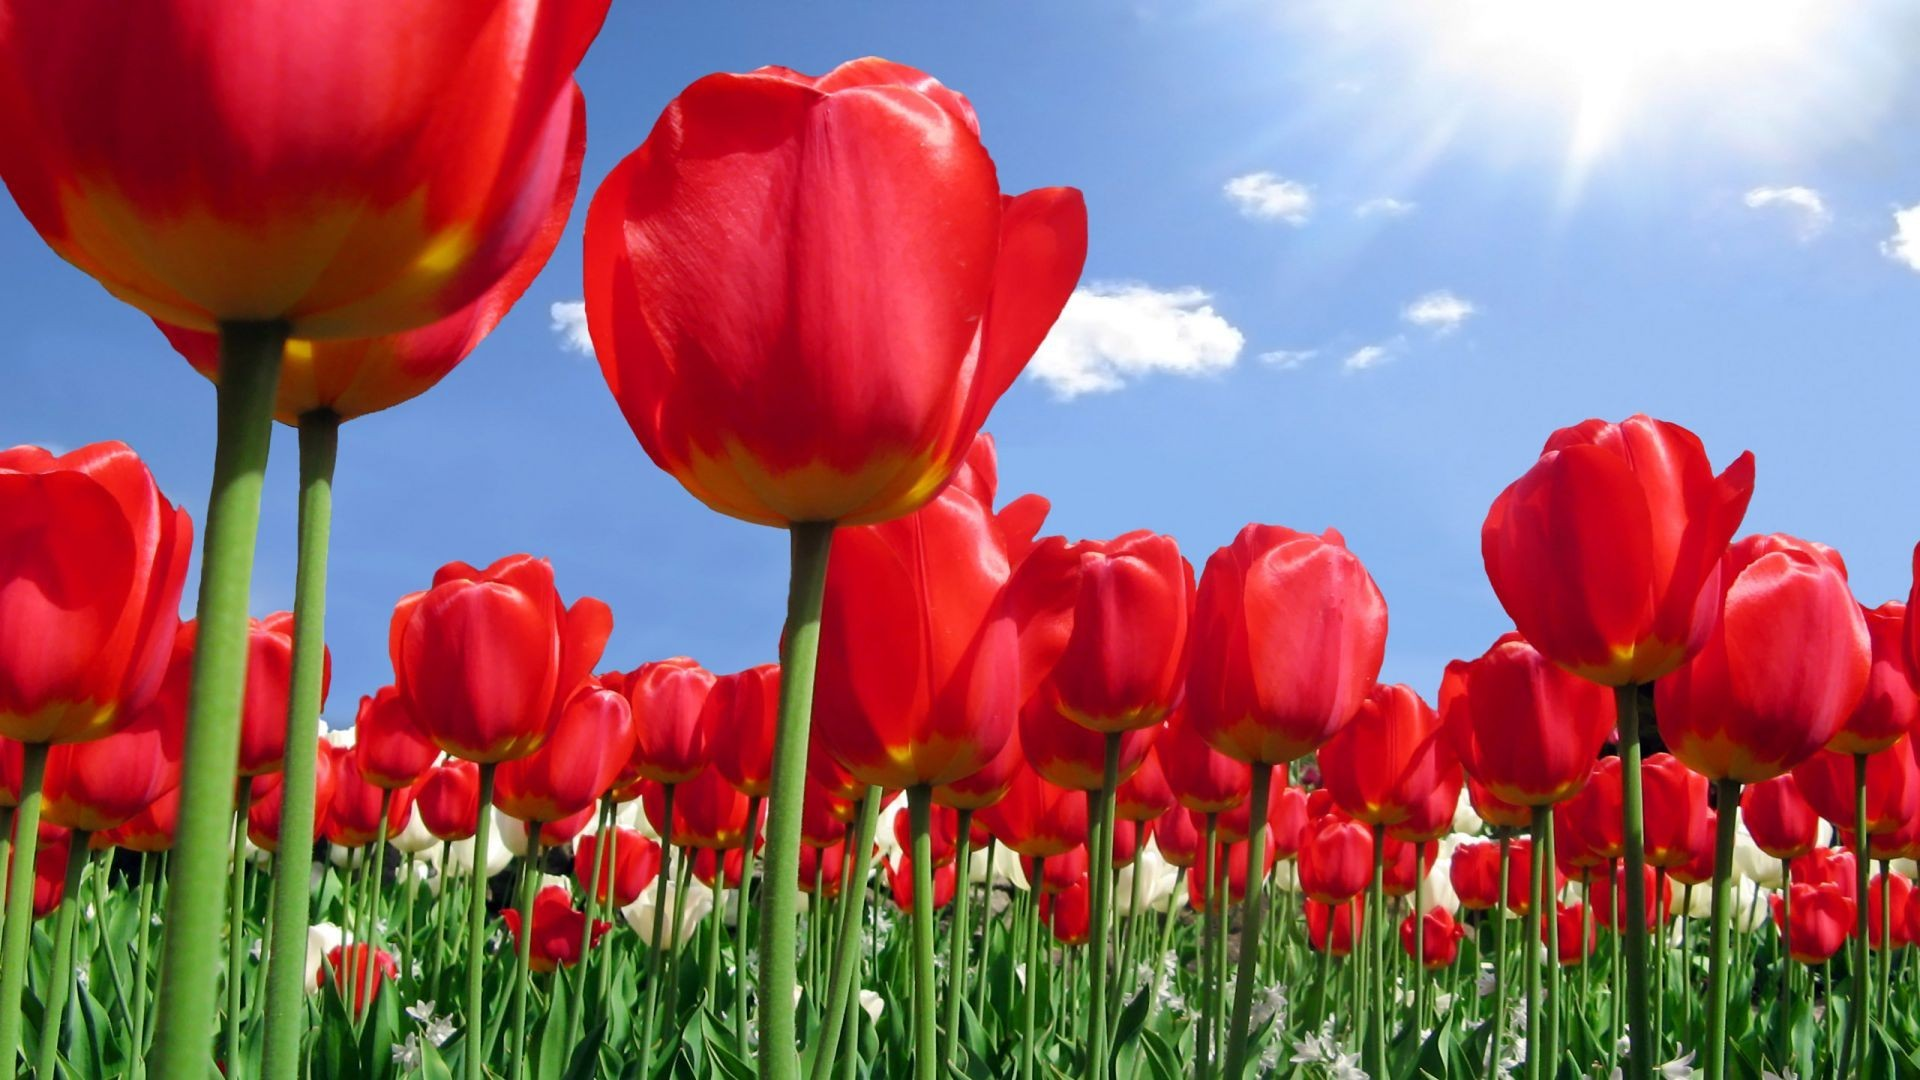 1920x1080 Tulips Tag - Tulip Sky Red Flowers Tulips Cloud Flower Images Hd Desktop  for HD 16